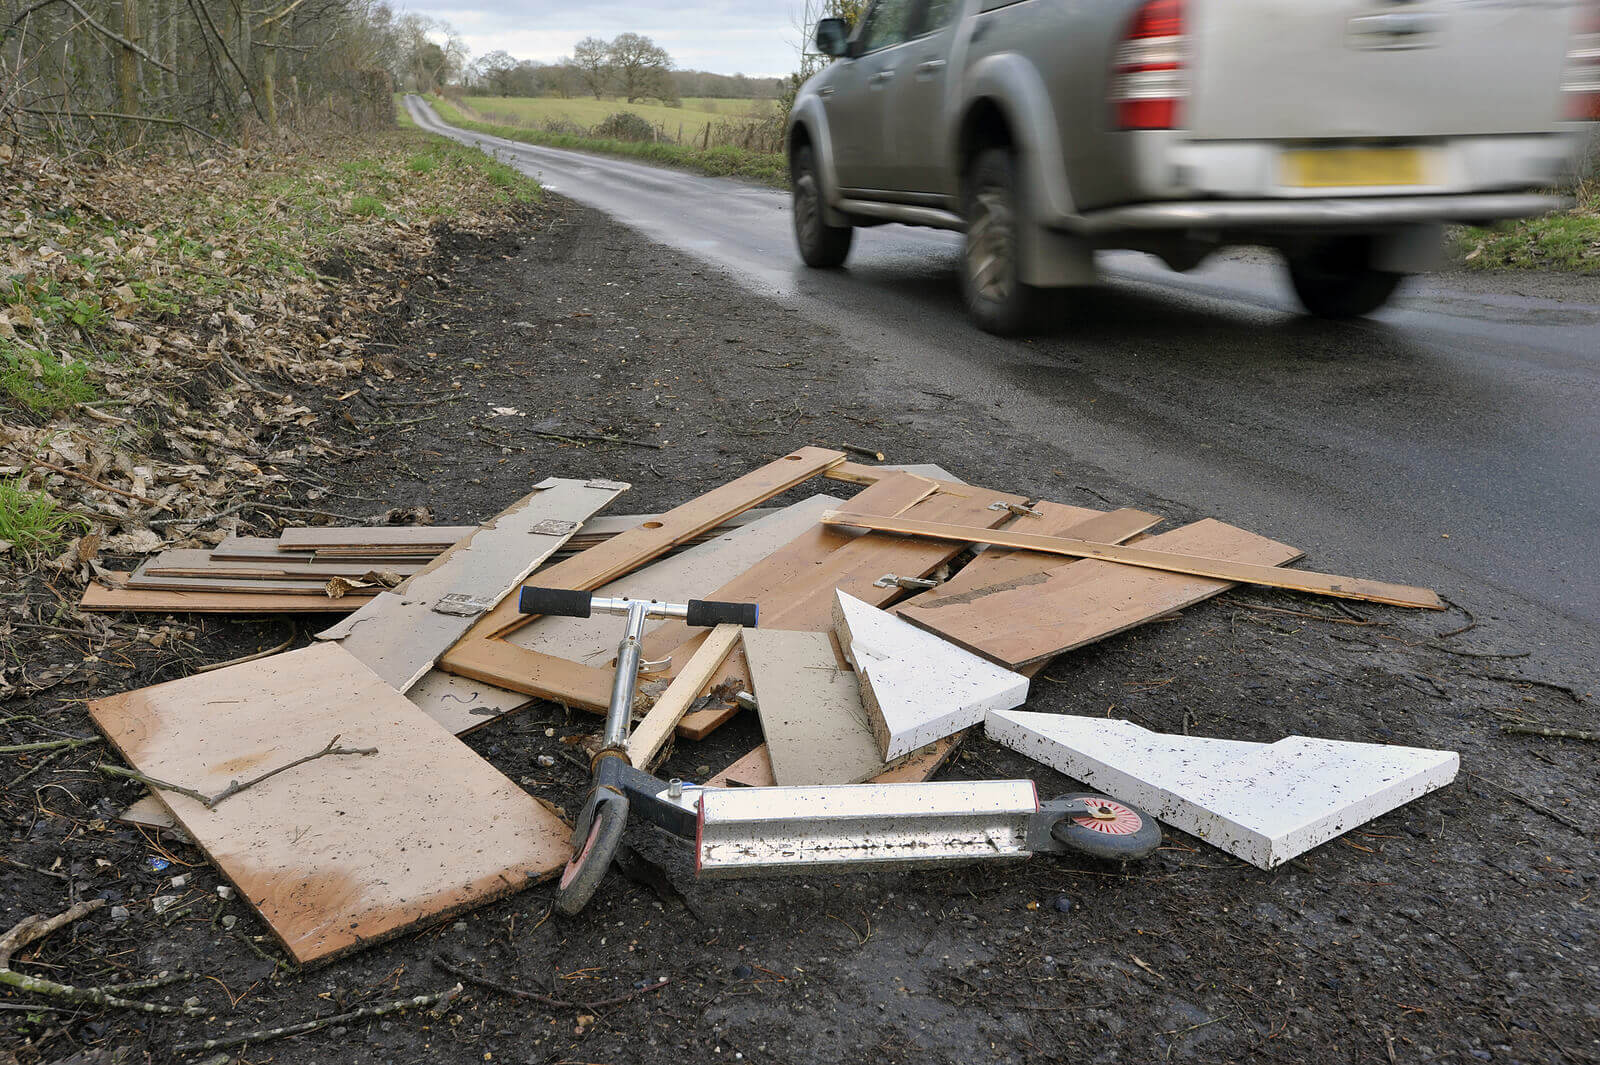 Fly-tipped household waste at the roadside with a van driving off